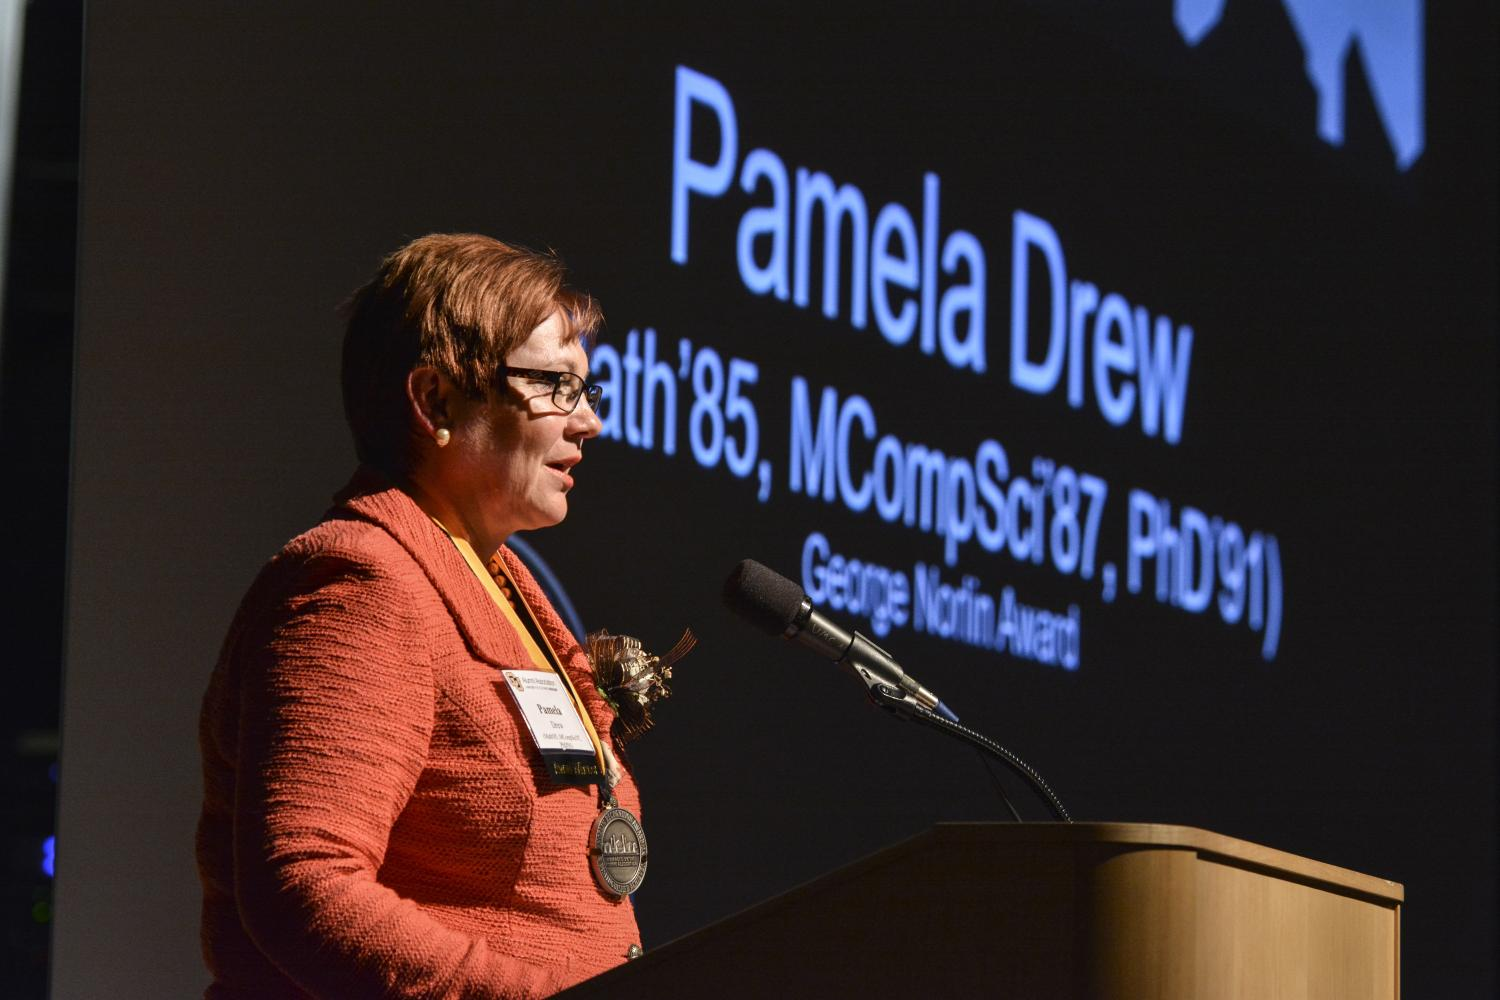 Pam Drew gives remarks at the Norlin award ceremony.